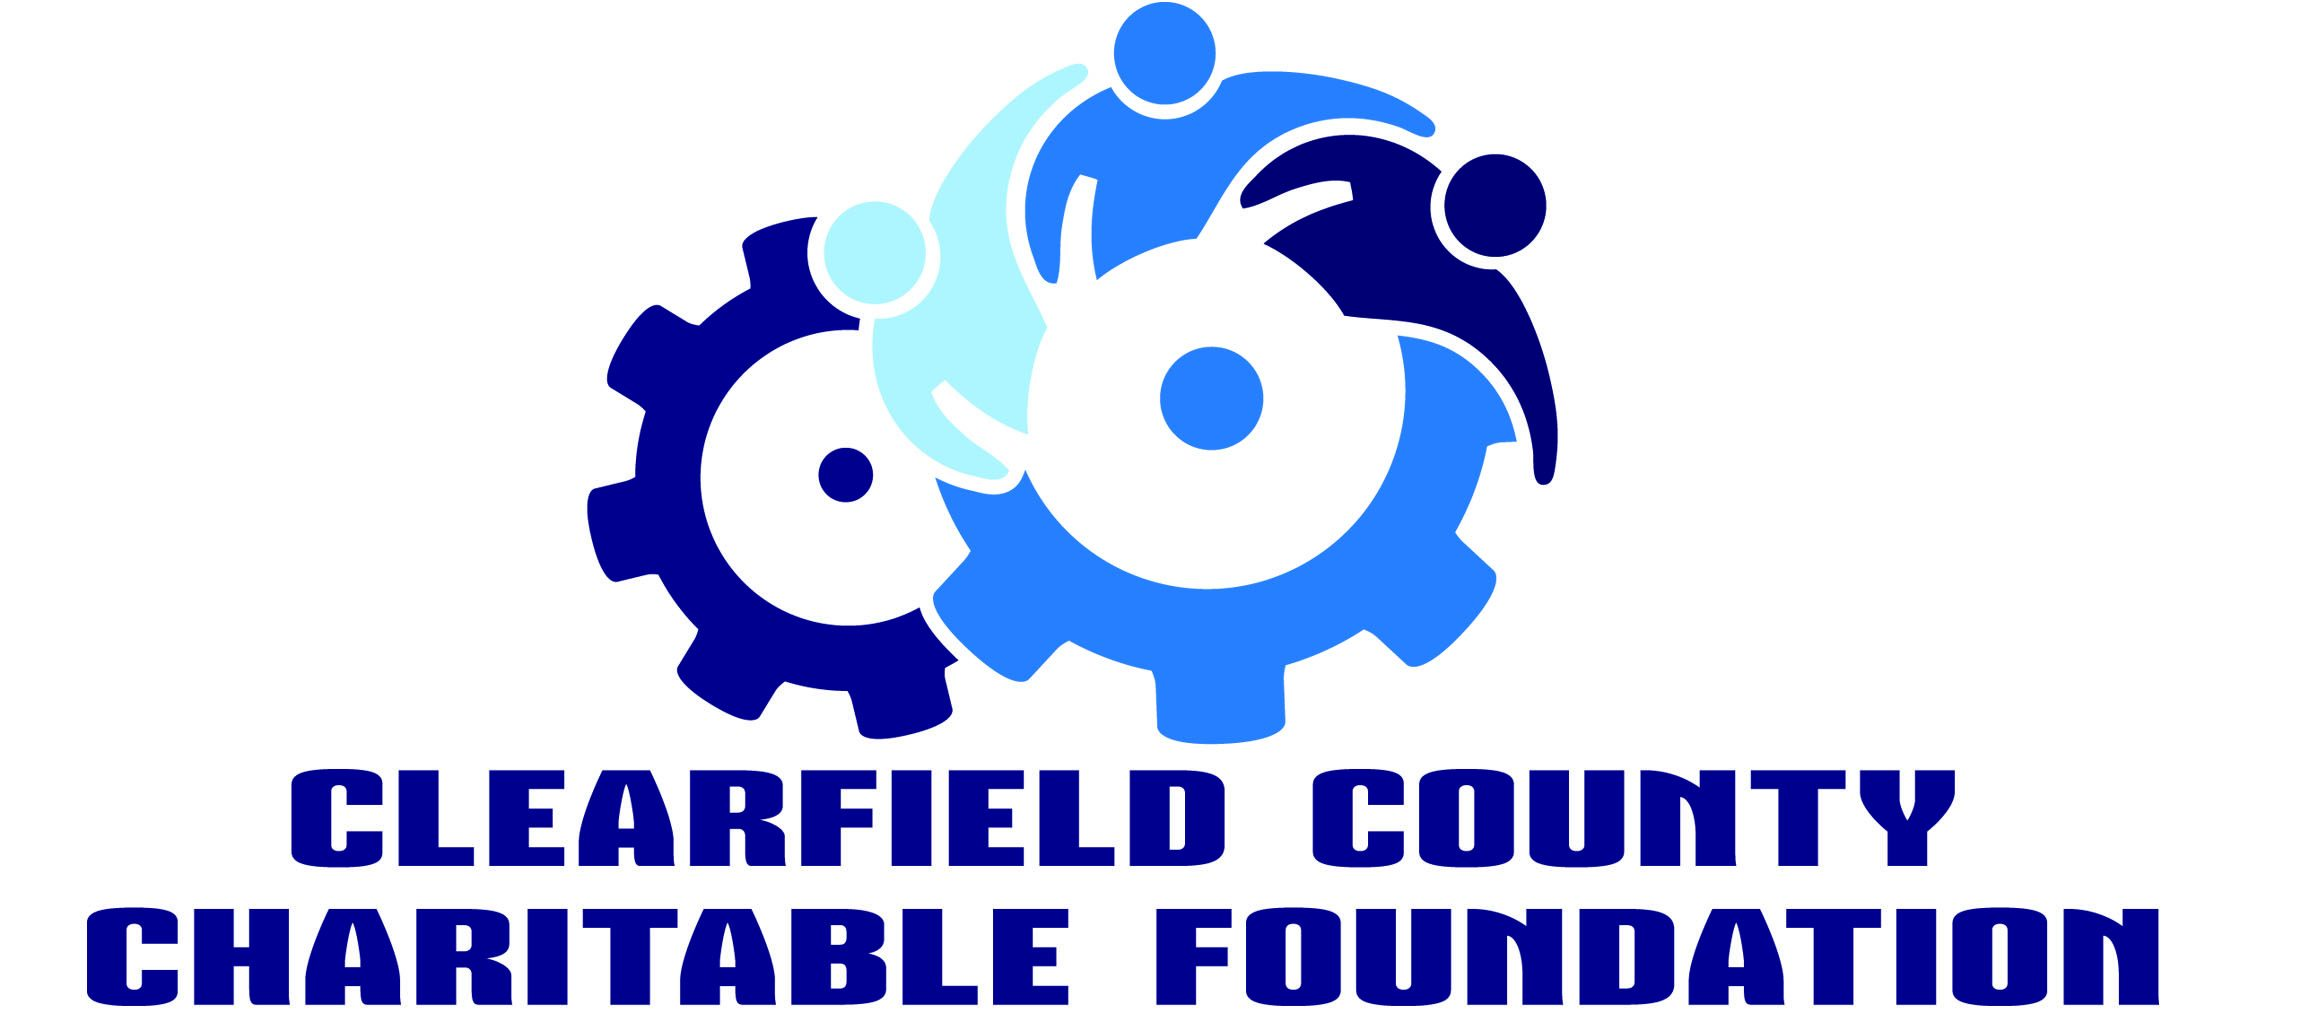 Clearfield County Charitable Foundation